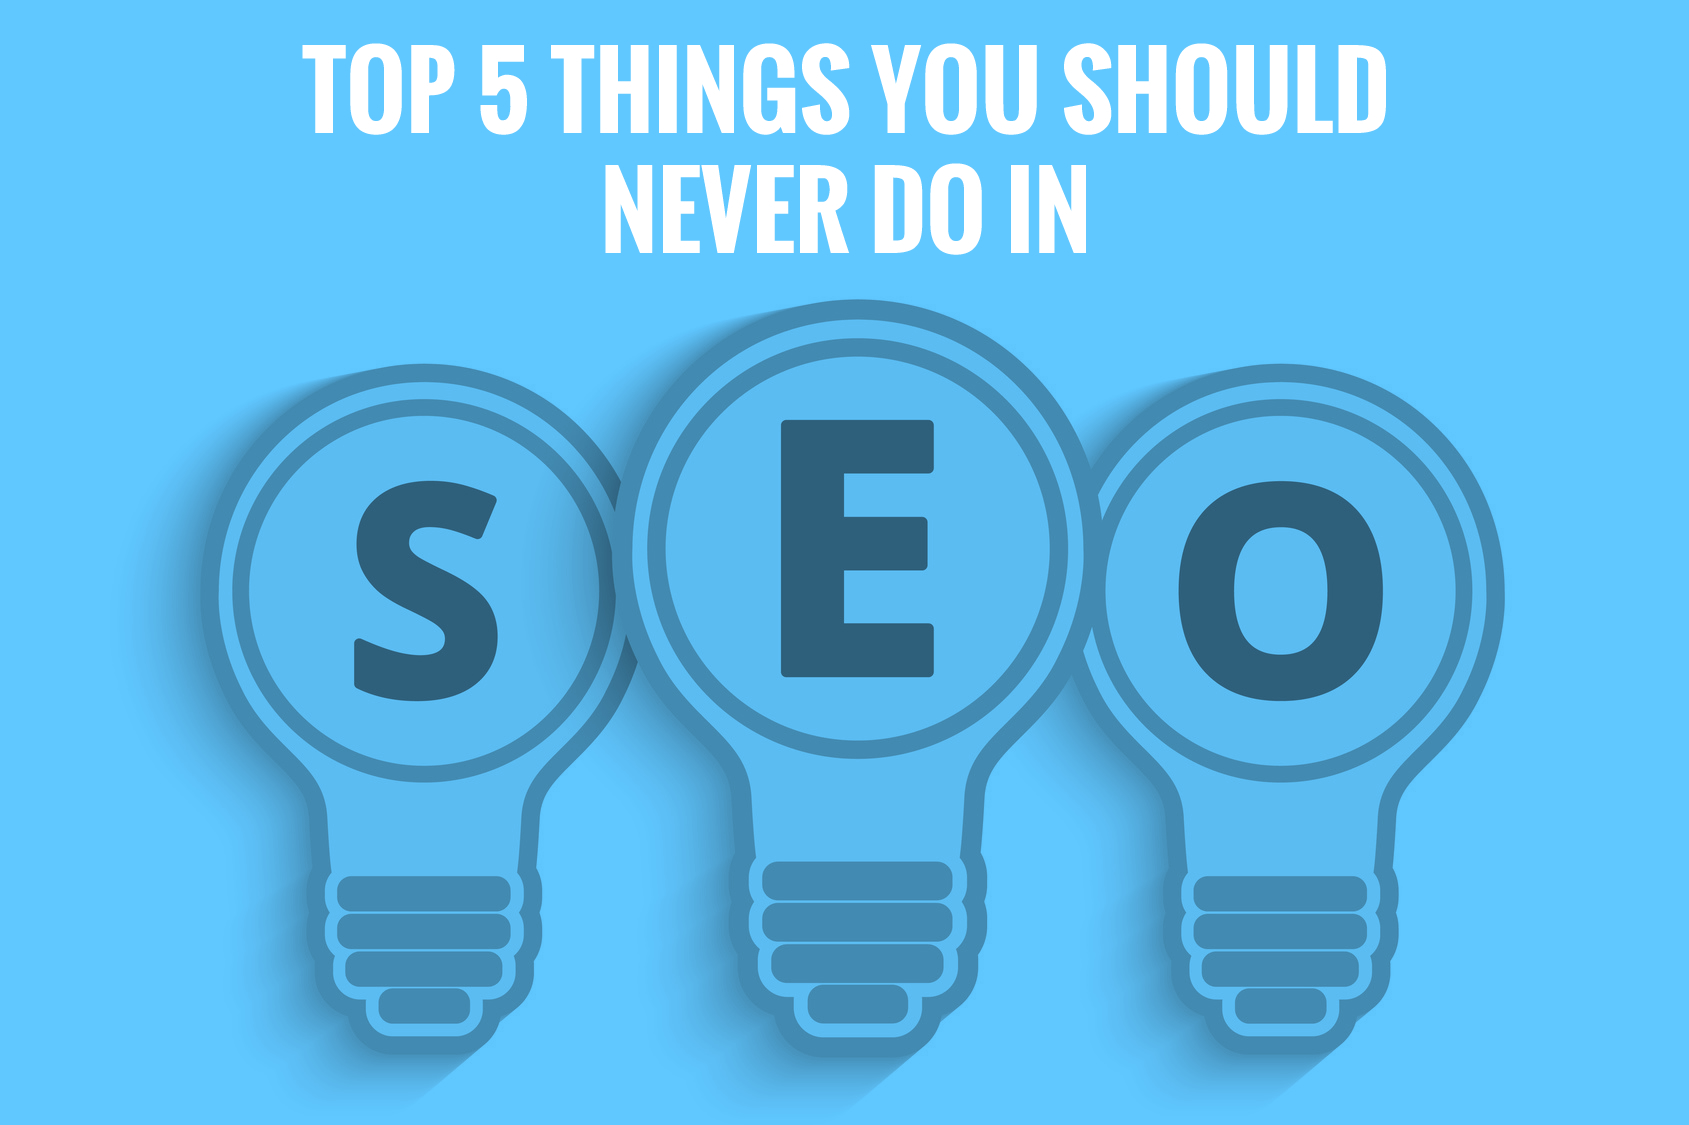 Top 5 Things You Should Never Do In SEO